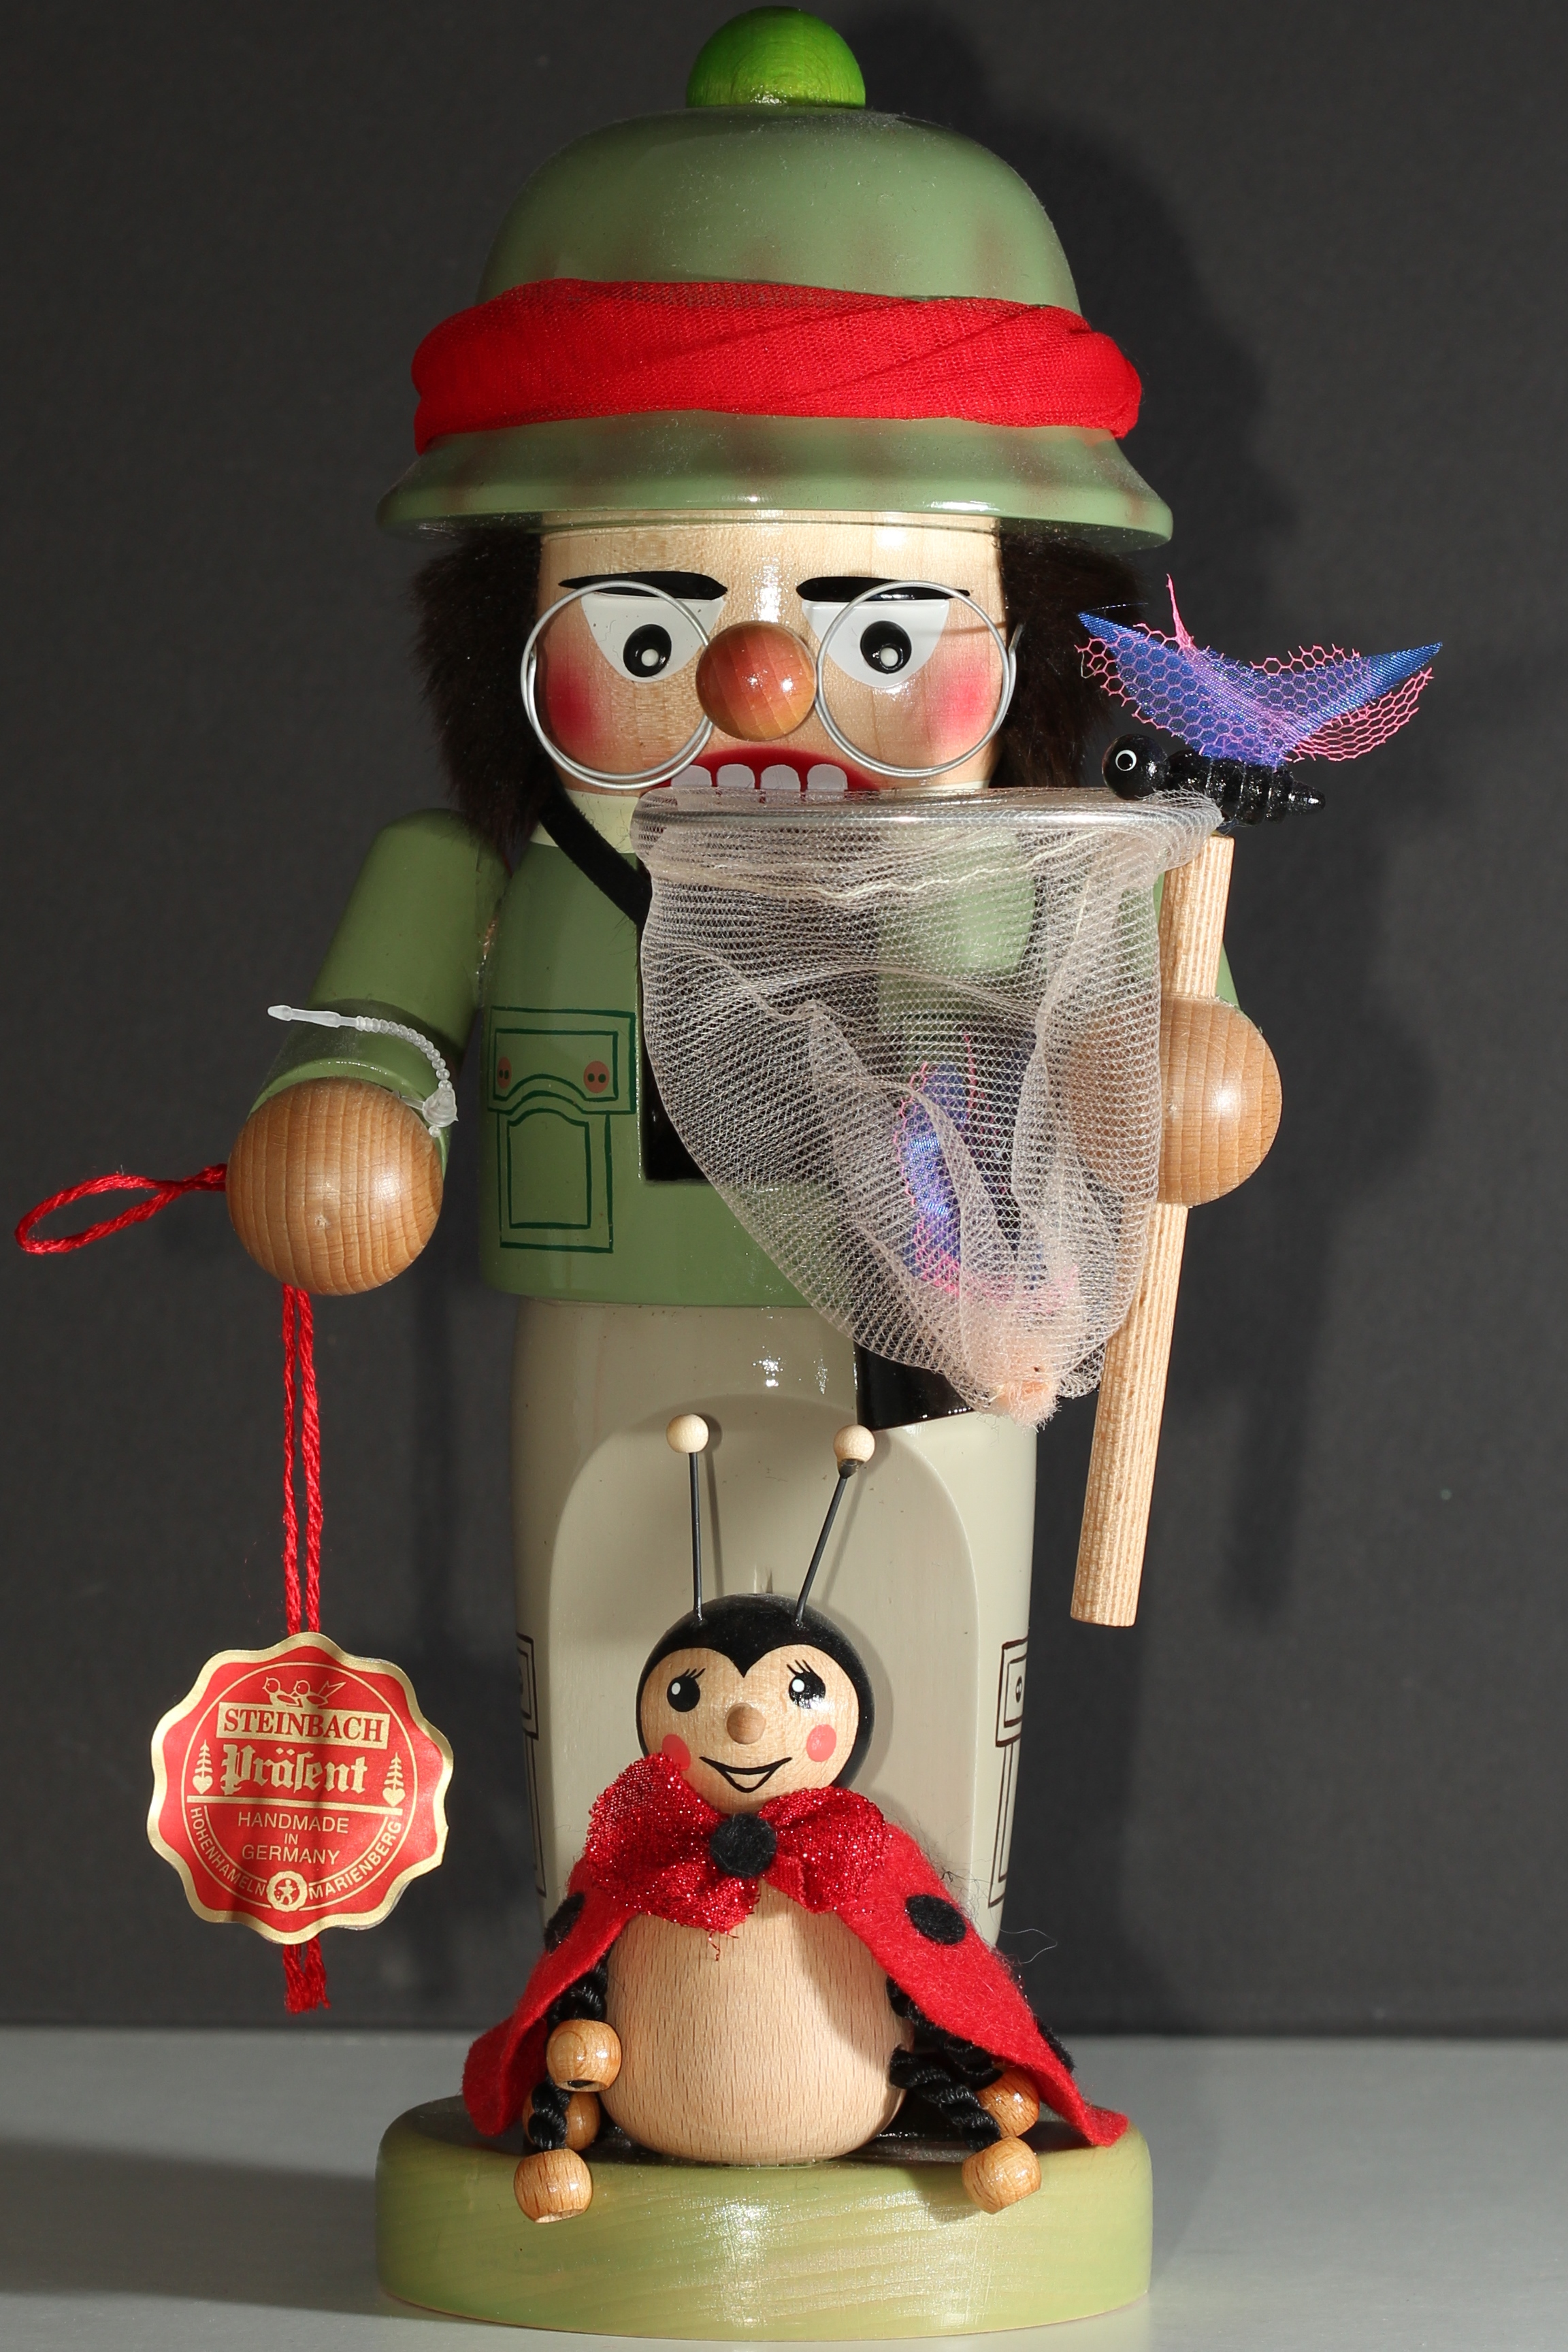 Note: This is a representation of Kyle Foster as an Entomolgist. Kyle Foster is not, in fact, a nutcracker.